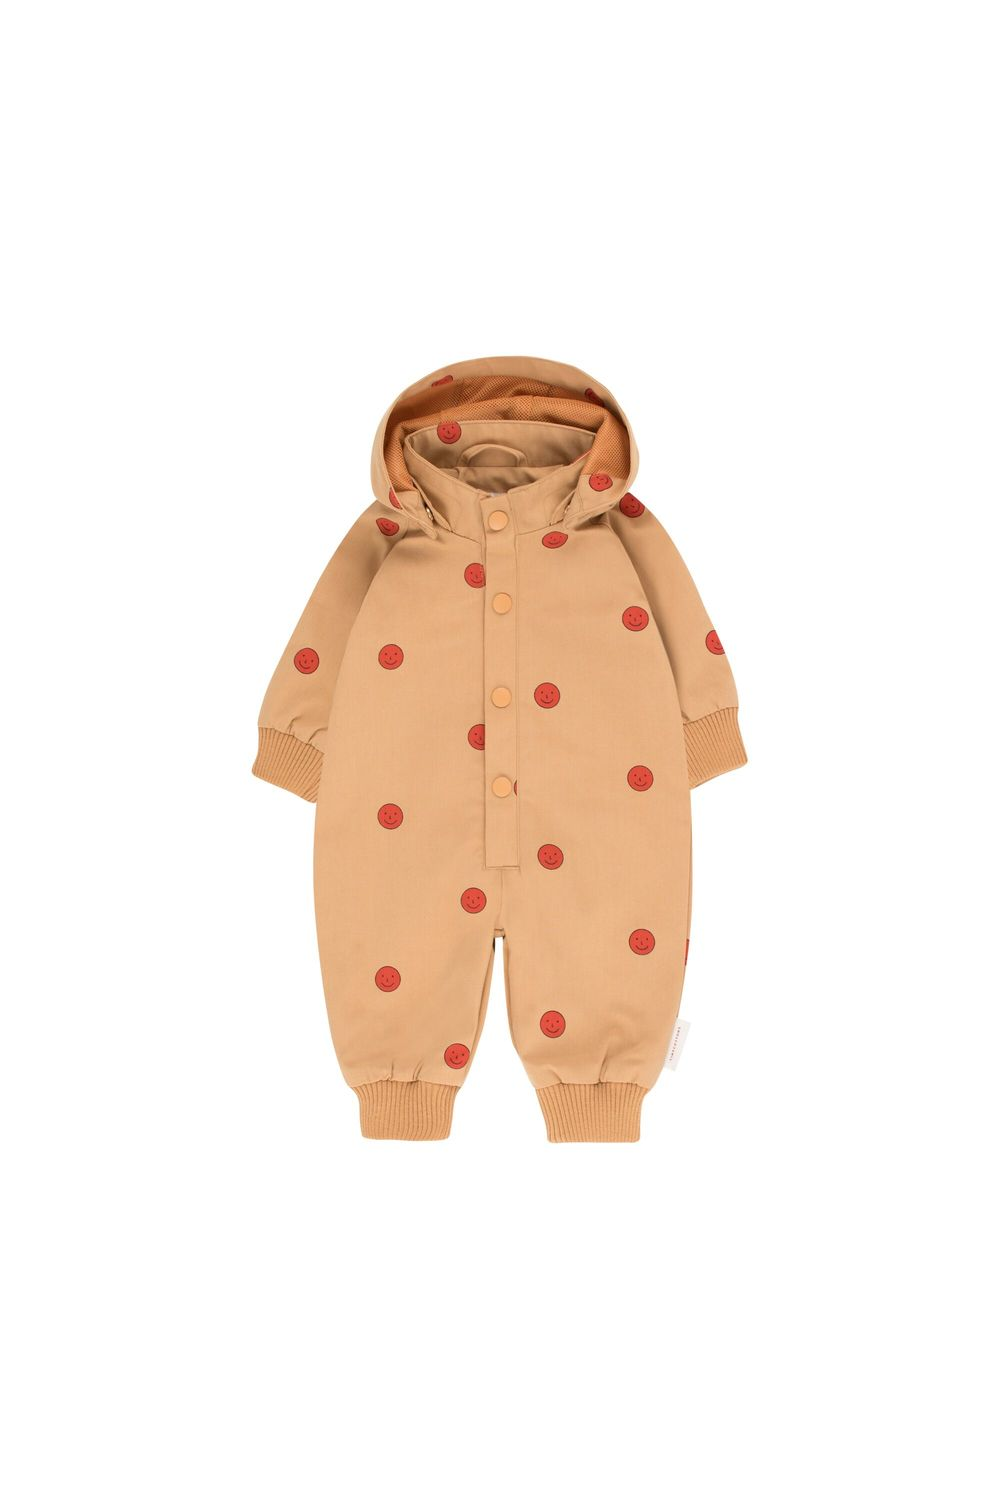 TINY COTTONS HAPPY FACE ONEPIECE, CAMEL/RED